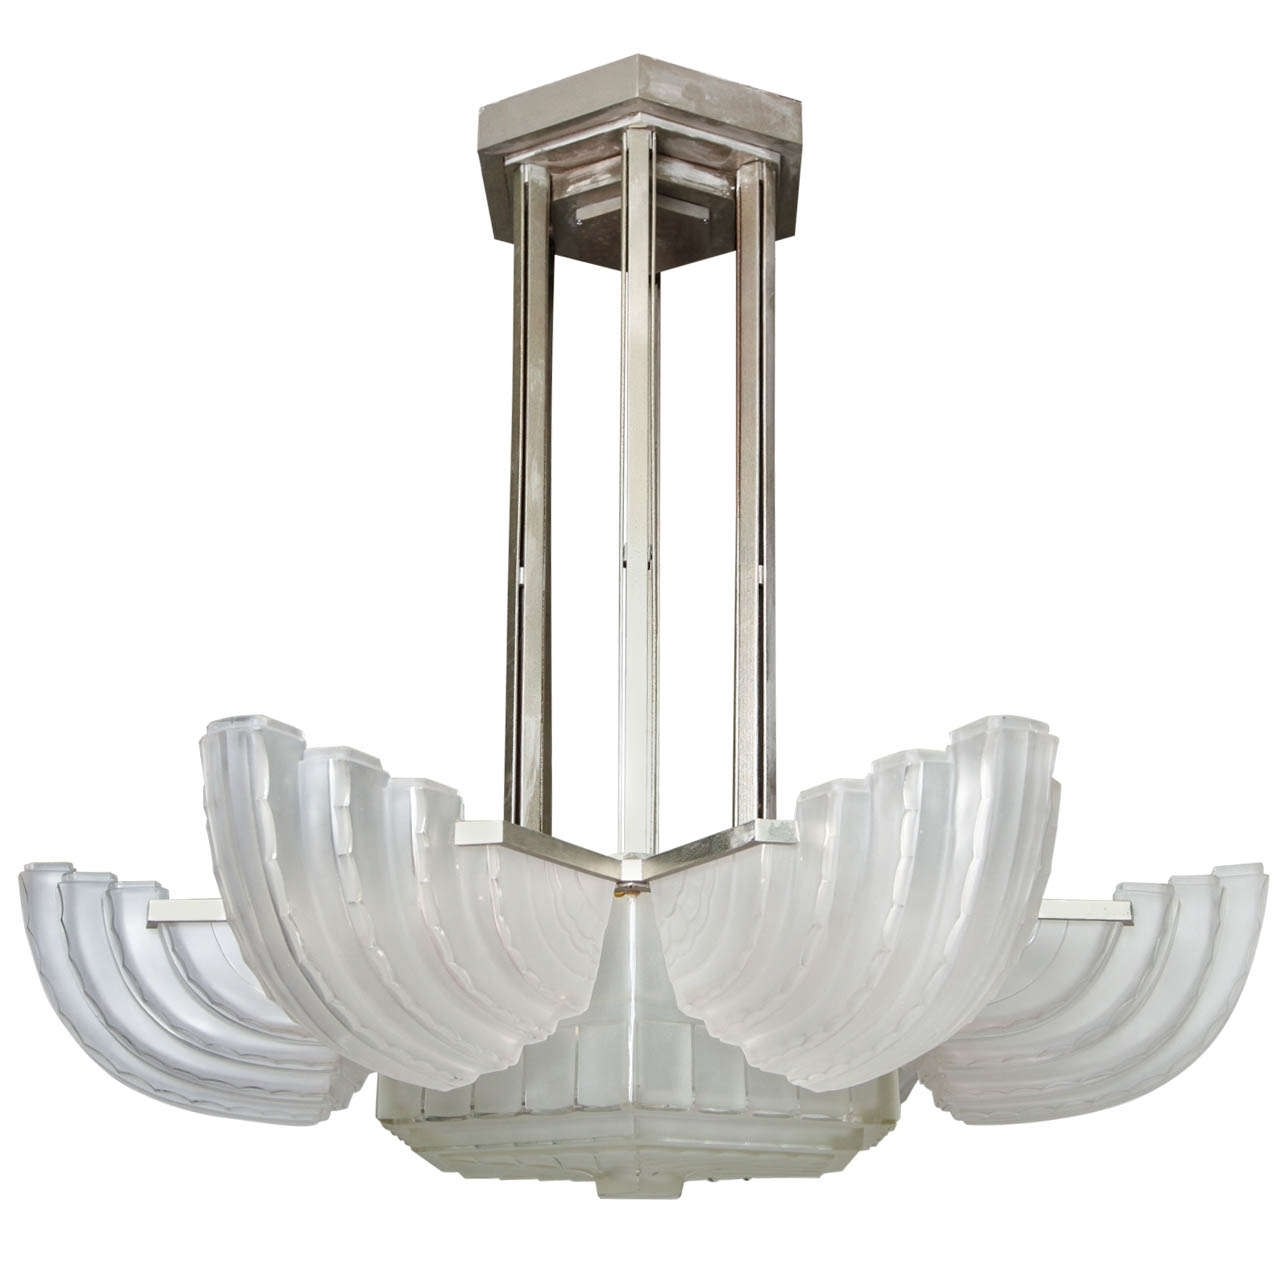 Art Deco Chandelier Inside Most Current Large And Important Art Deco Chandeliersabino – Paul Stamati Gallery (Gallery 15 of 20)